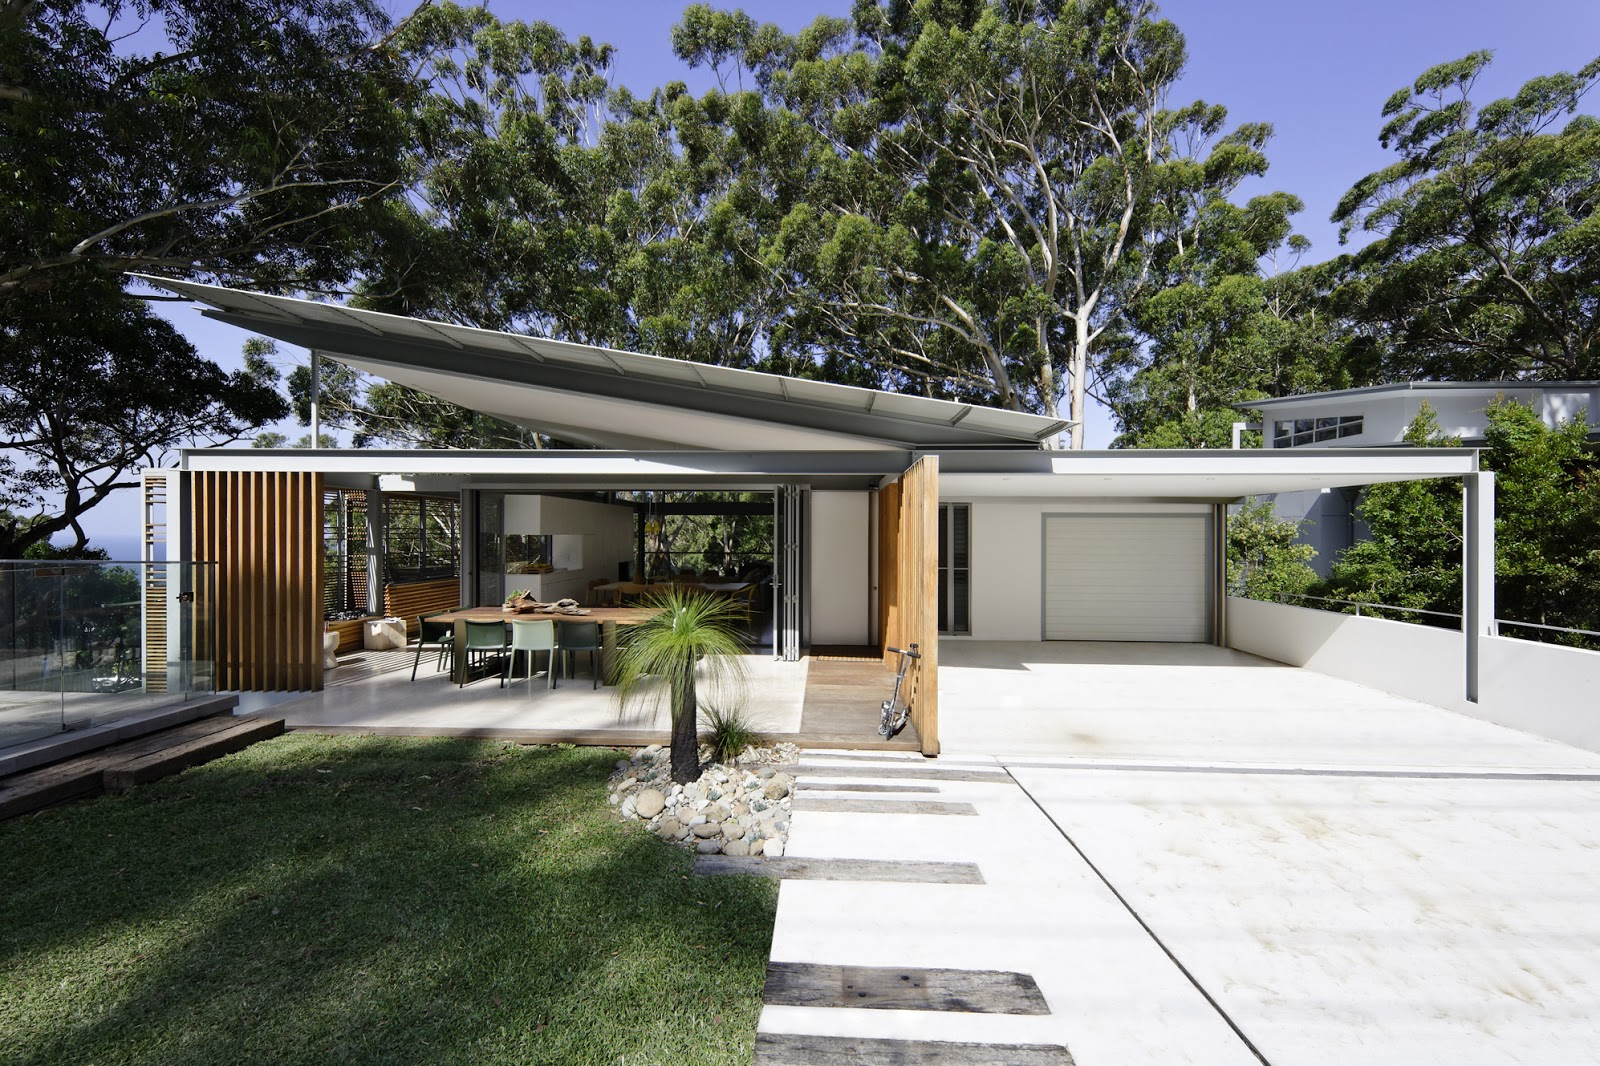 Minosa saville isaac architecture avoca beach house for Best home designs nsw